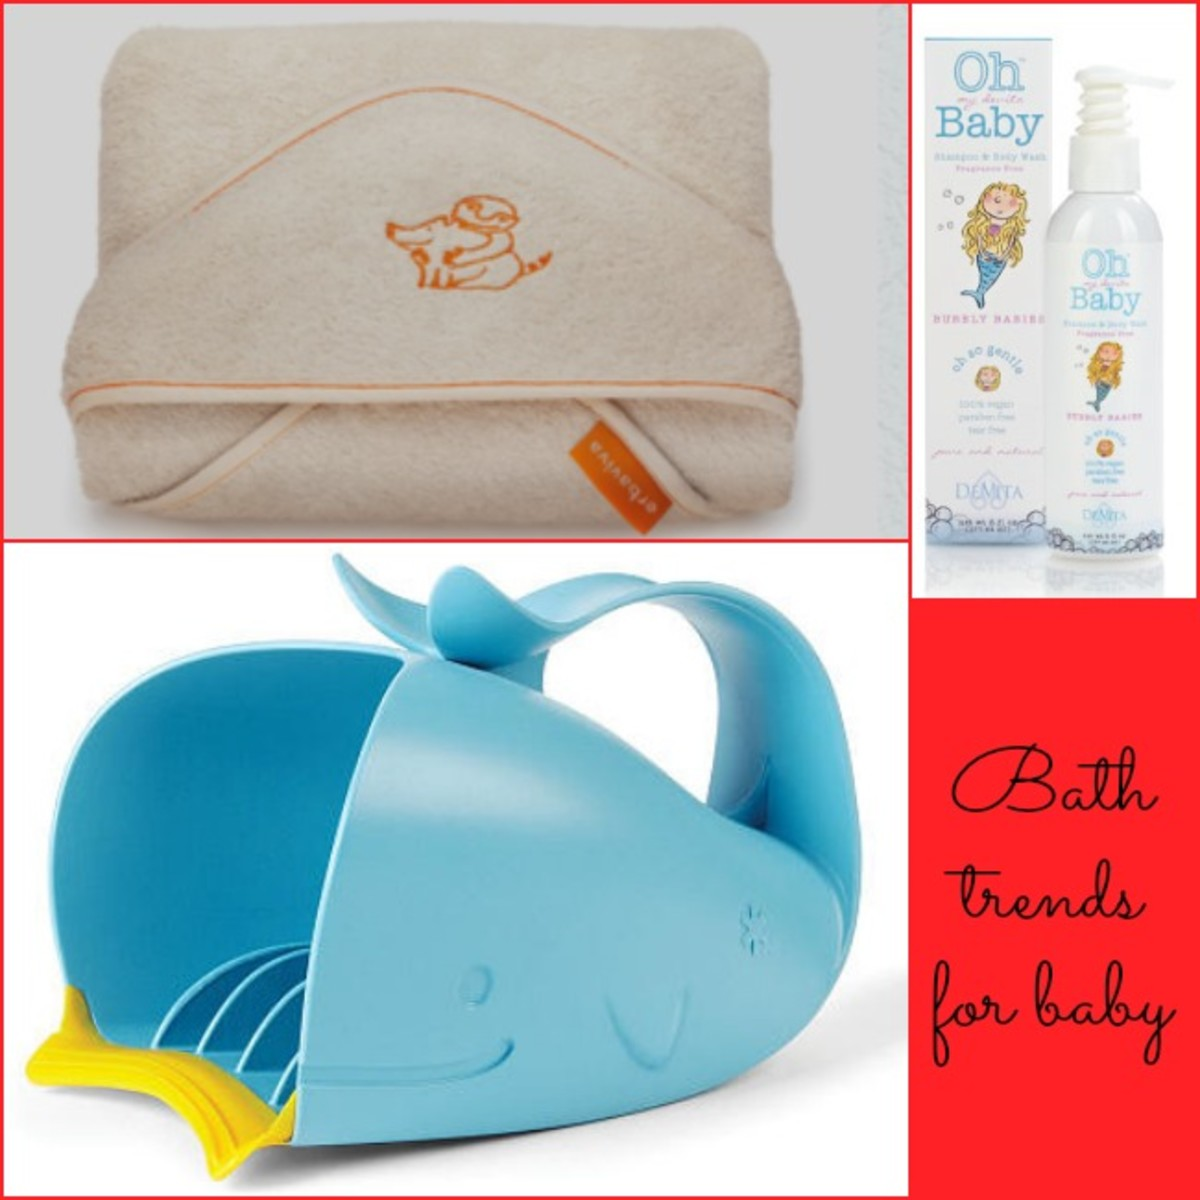 erbaviva, bath trends, baby bath gear, skip hop, oh my devita baby, bath time for baby